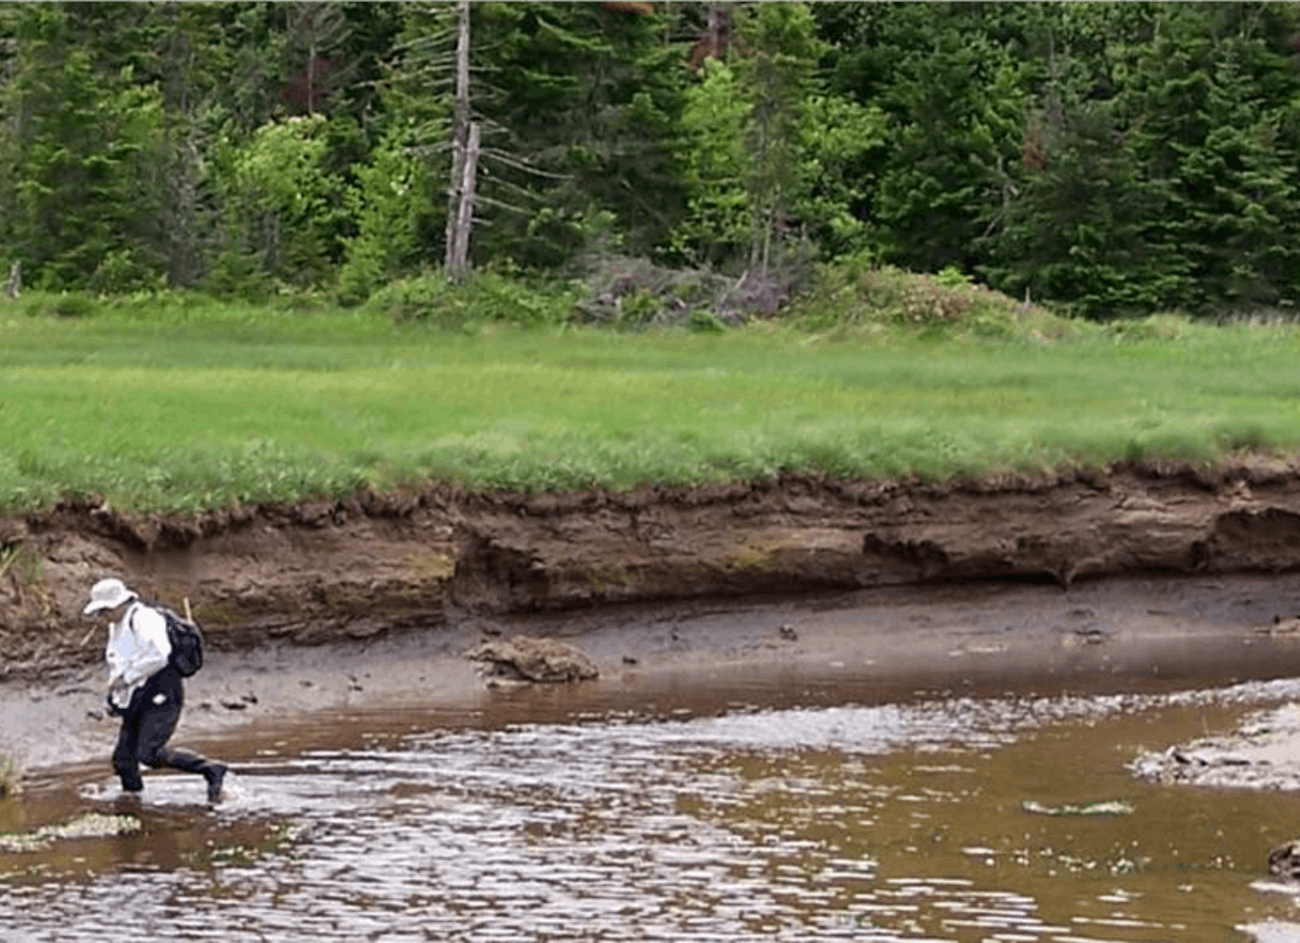 Ten feet (3 meters) of carbon-rich soil accumulation along Dipper Harbour, Bay of Fundy, New Brunswick, Canada, has been radiocarbon dated to have accumulated over 3,000 years.